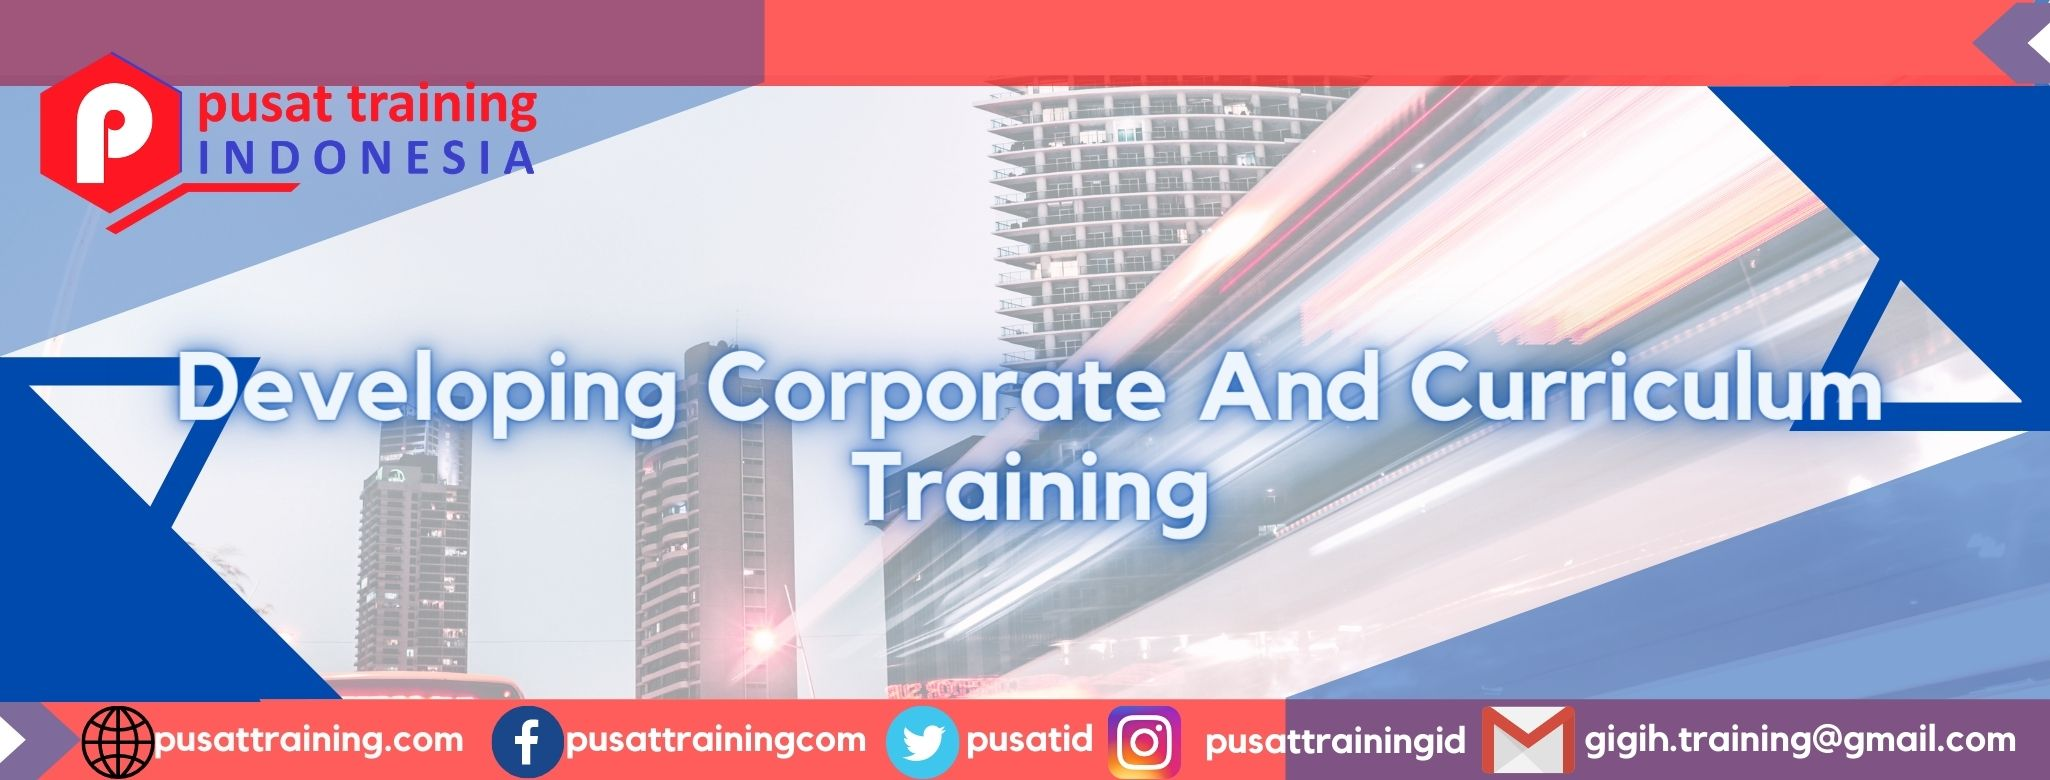 Developing Corporate And Curriculum Training